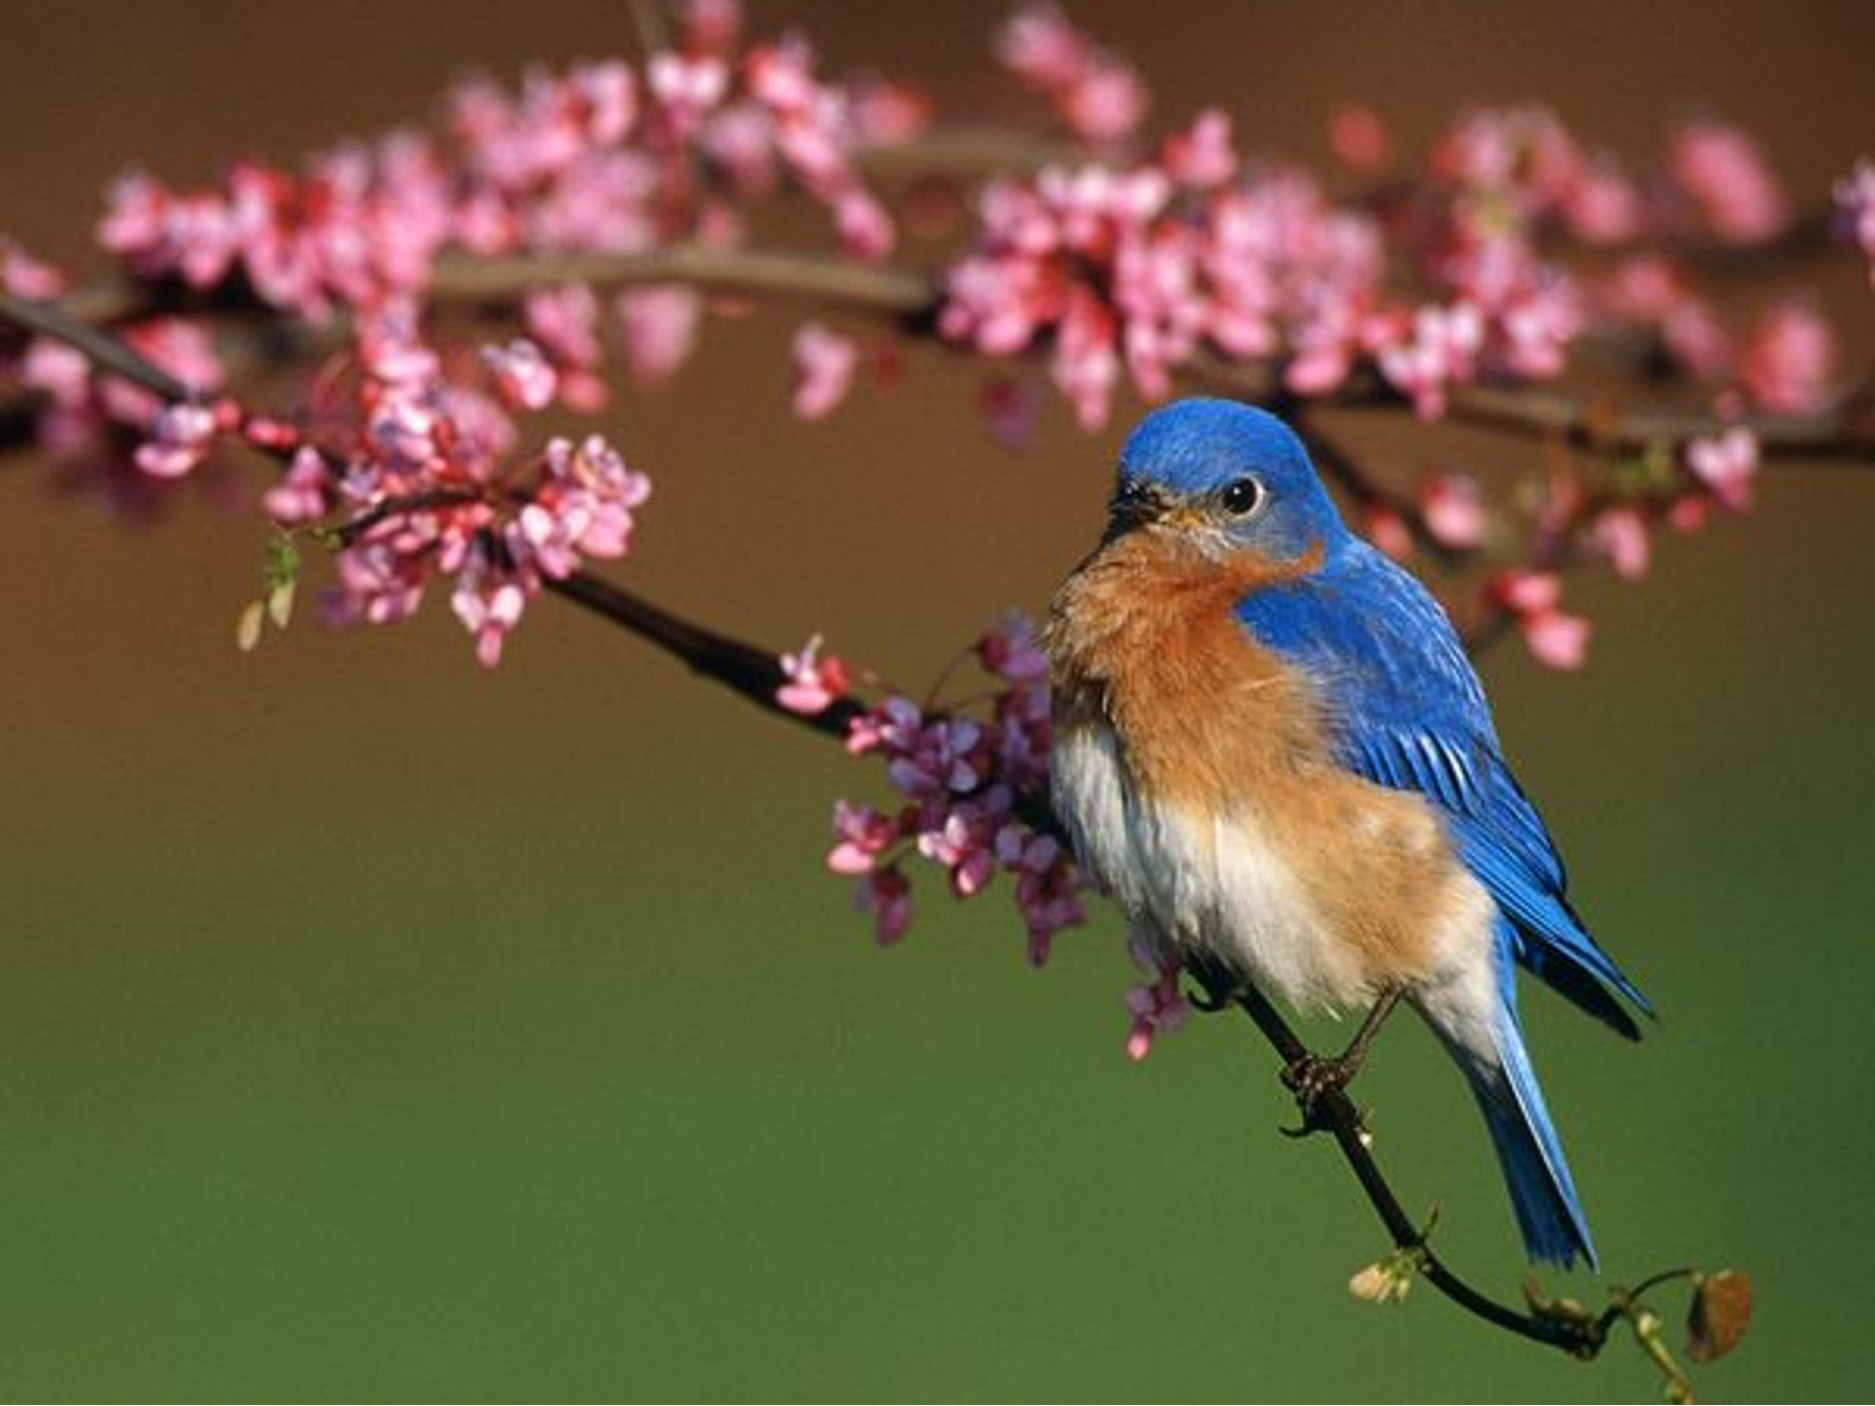 Free Bluebird Wallpaper For Desktop: On The Wings Of Love